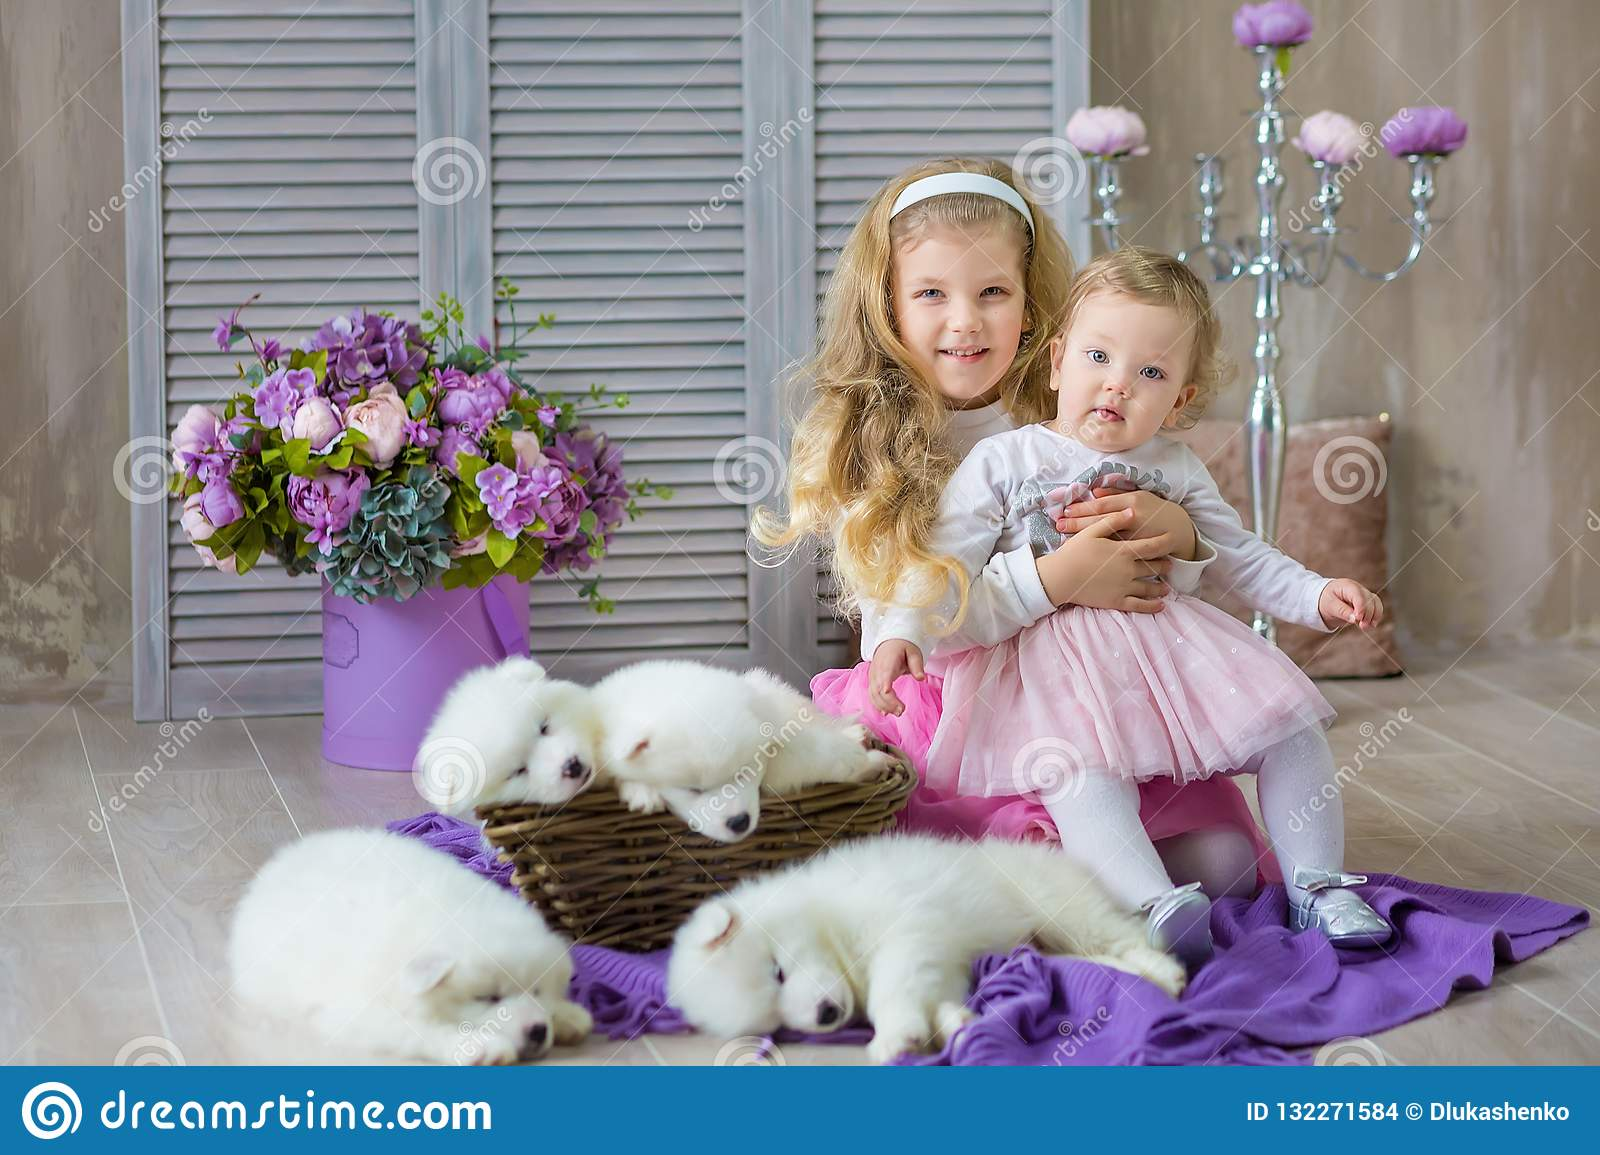 9fe918cf6e Blond girl sisters posing with husky puppy white color in retro studio  shoot. Cute young child sisters play with puppy dogs in designed home  decorations